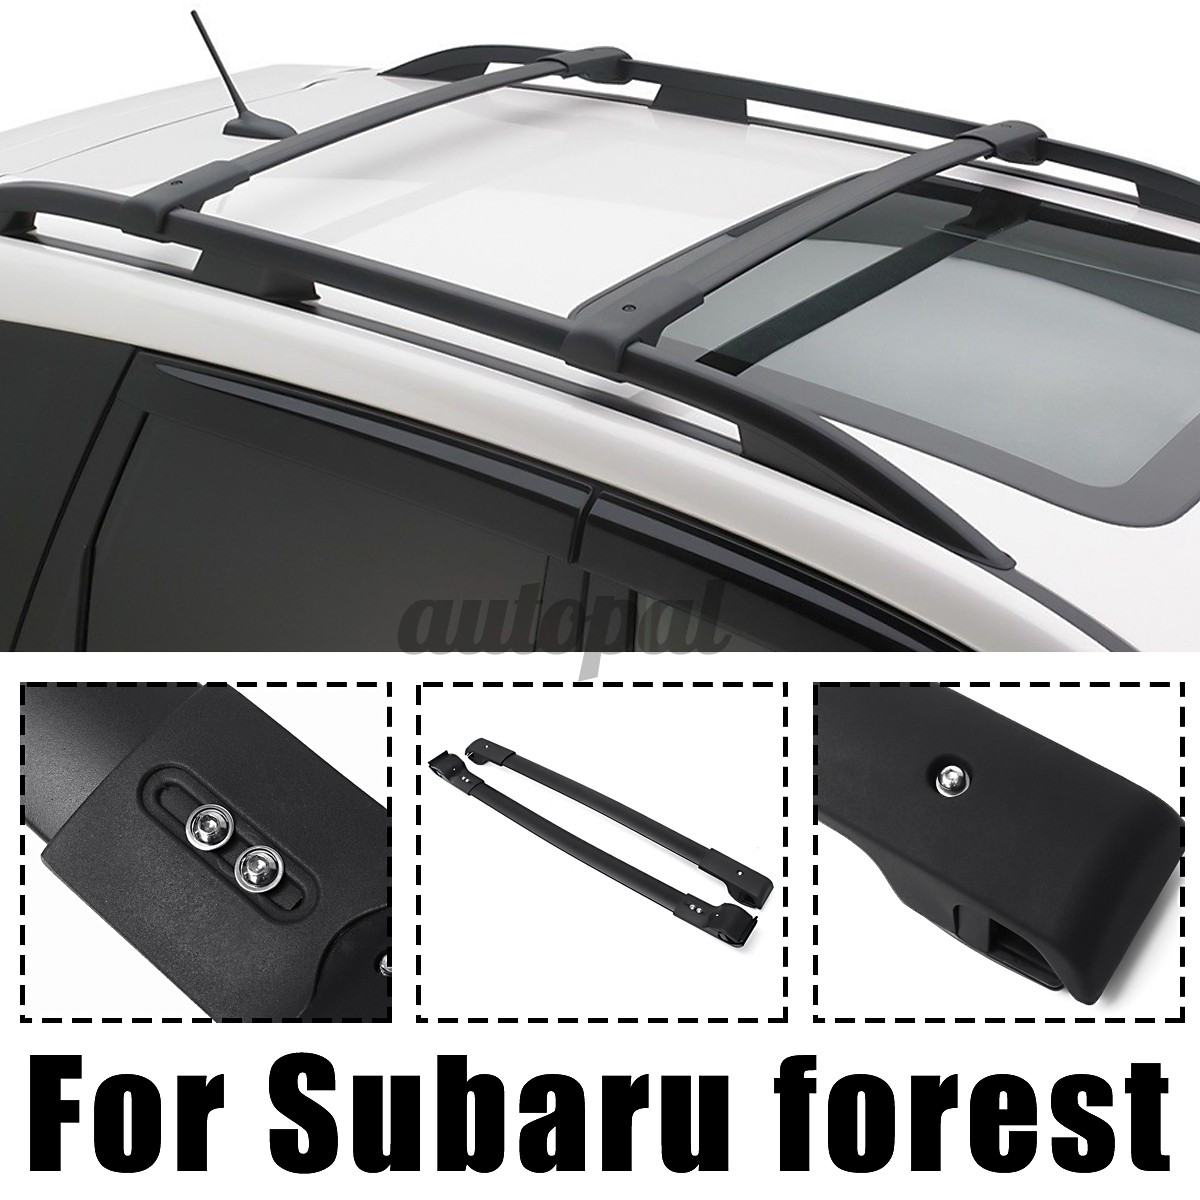 2x Car Roof Rack Cross Bars Luggage Carrier Front Back For Subaru Forester 14 17 Shopee Malaysia